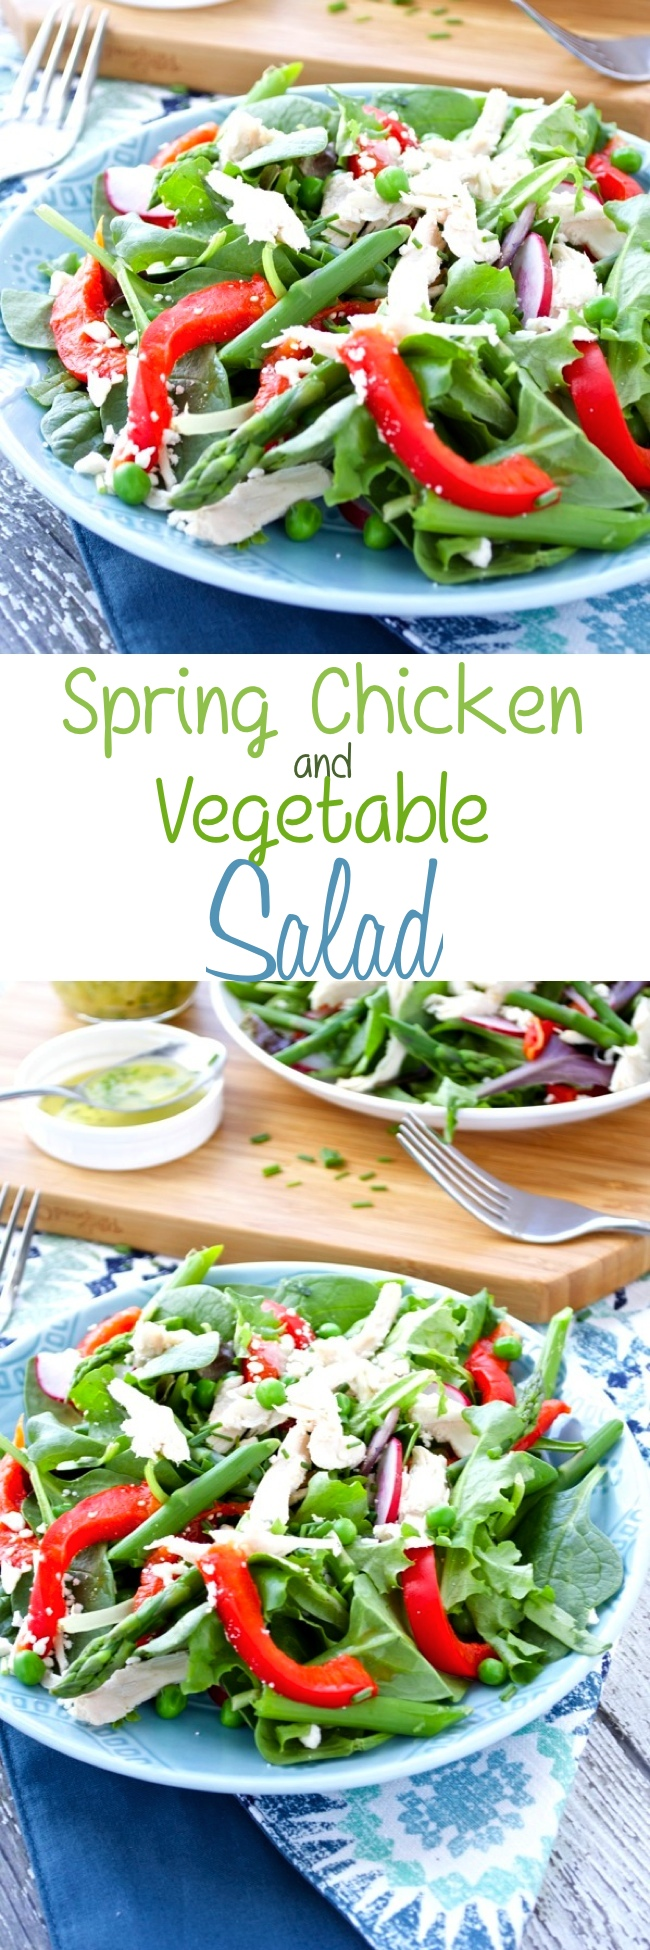 Spring Chicken and Vegetable Salad Pin